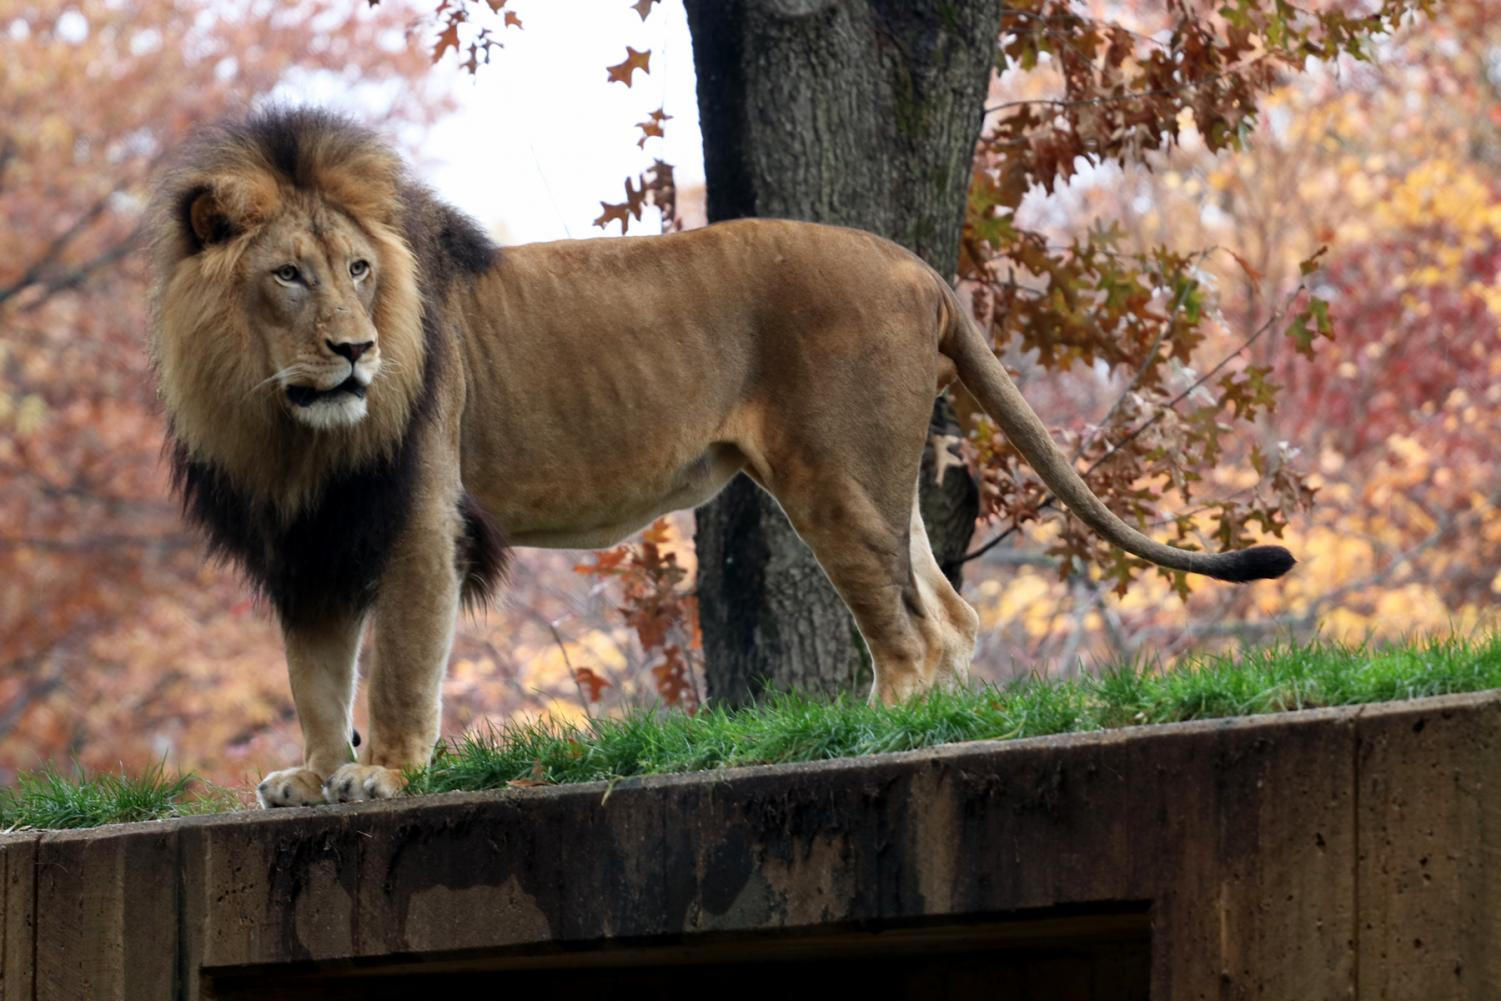 National Zoo continues effort to conserve animals